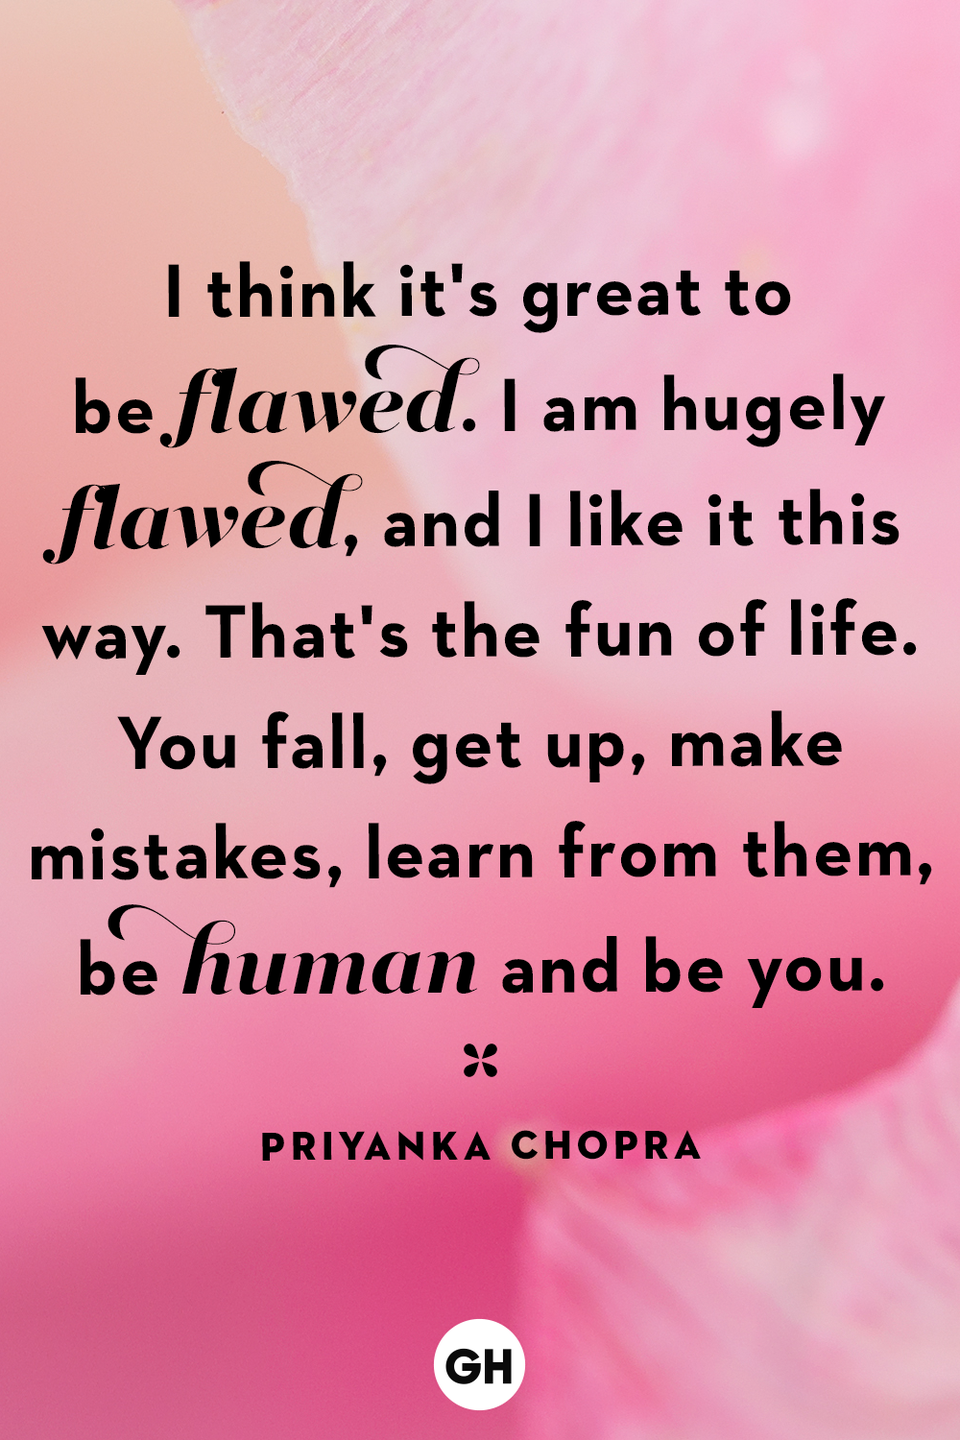 <p>I think it's great to be flawed. I am hugely flawed, and I like it this way. That's the fun of life. You fall, get up, make mistakes, learn from them, be human and be you.</p>